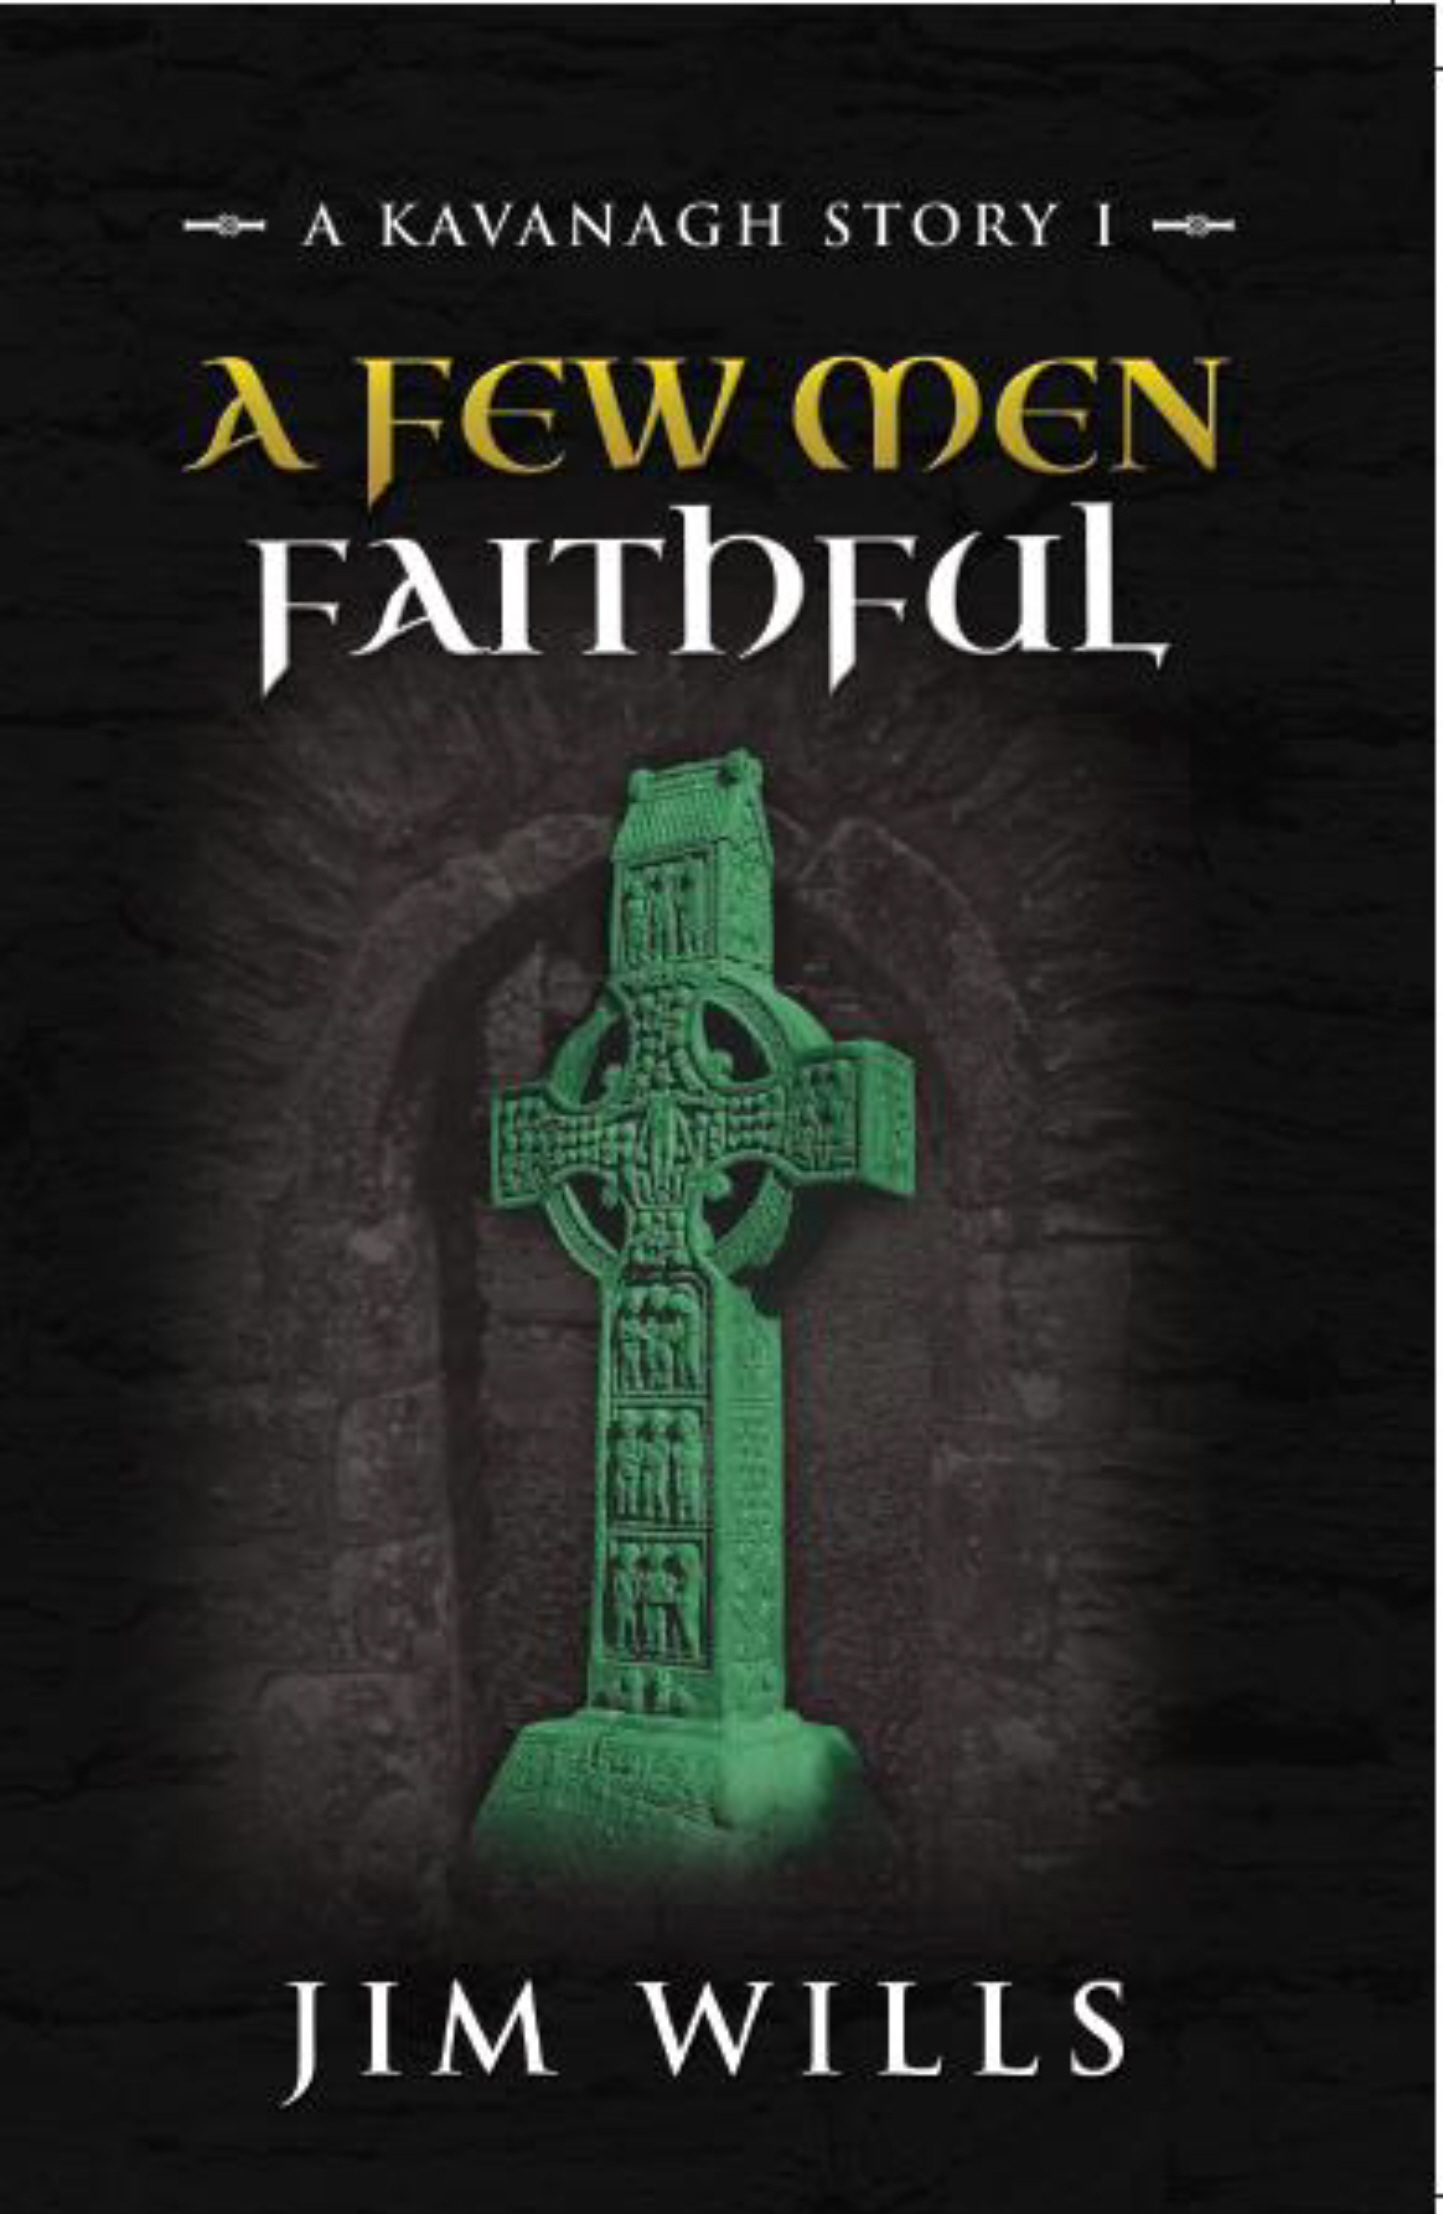 A Few Men Faithful: A Kavanagh Story I